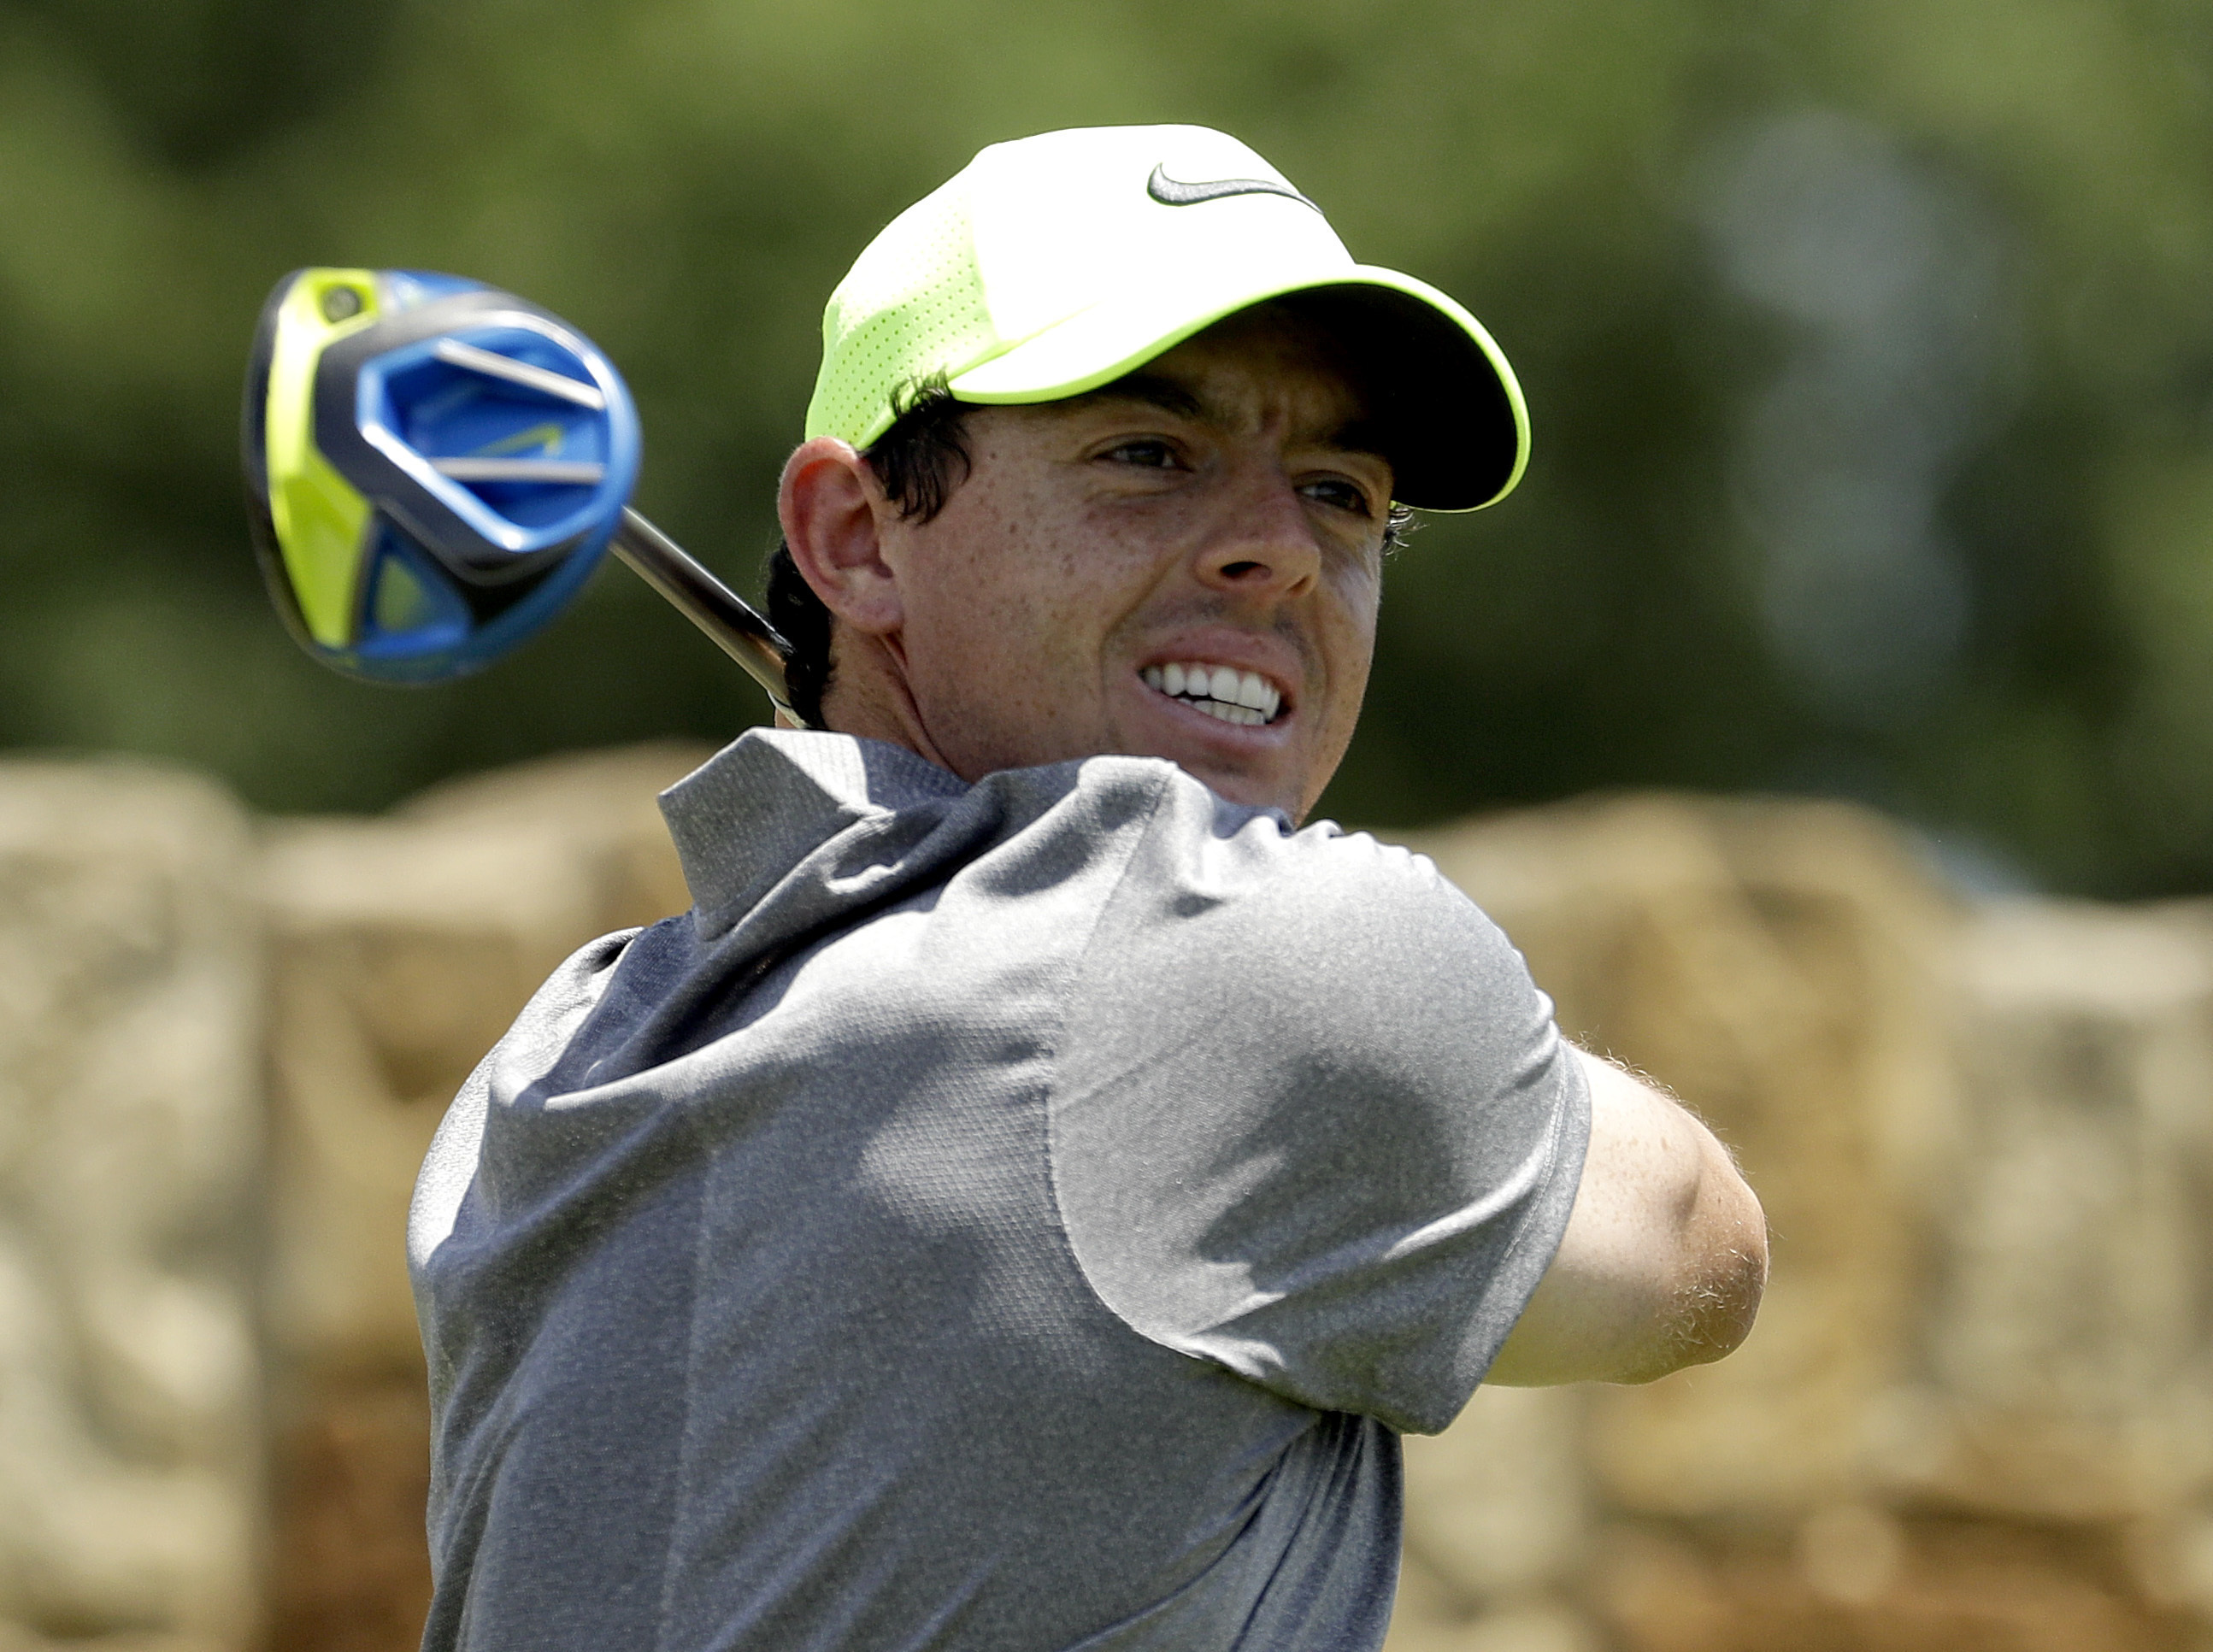 FILE - In this Saturday, June 18, 2016 file photo, Rory McIlroy, of Northern Ireland, watches his tee shot on the ninth hole during the rain delayed second round of the U.S. Open golf championship at Oakmont Country Club, in Oakmont, Pa. The British Open